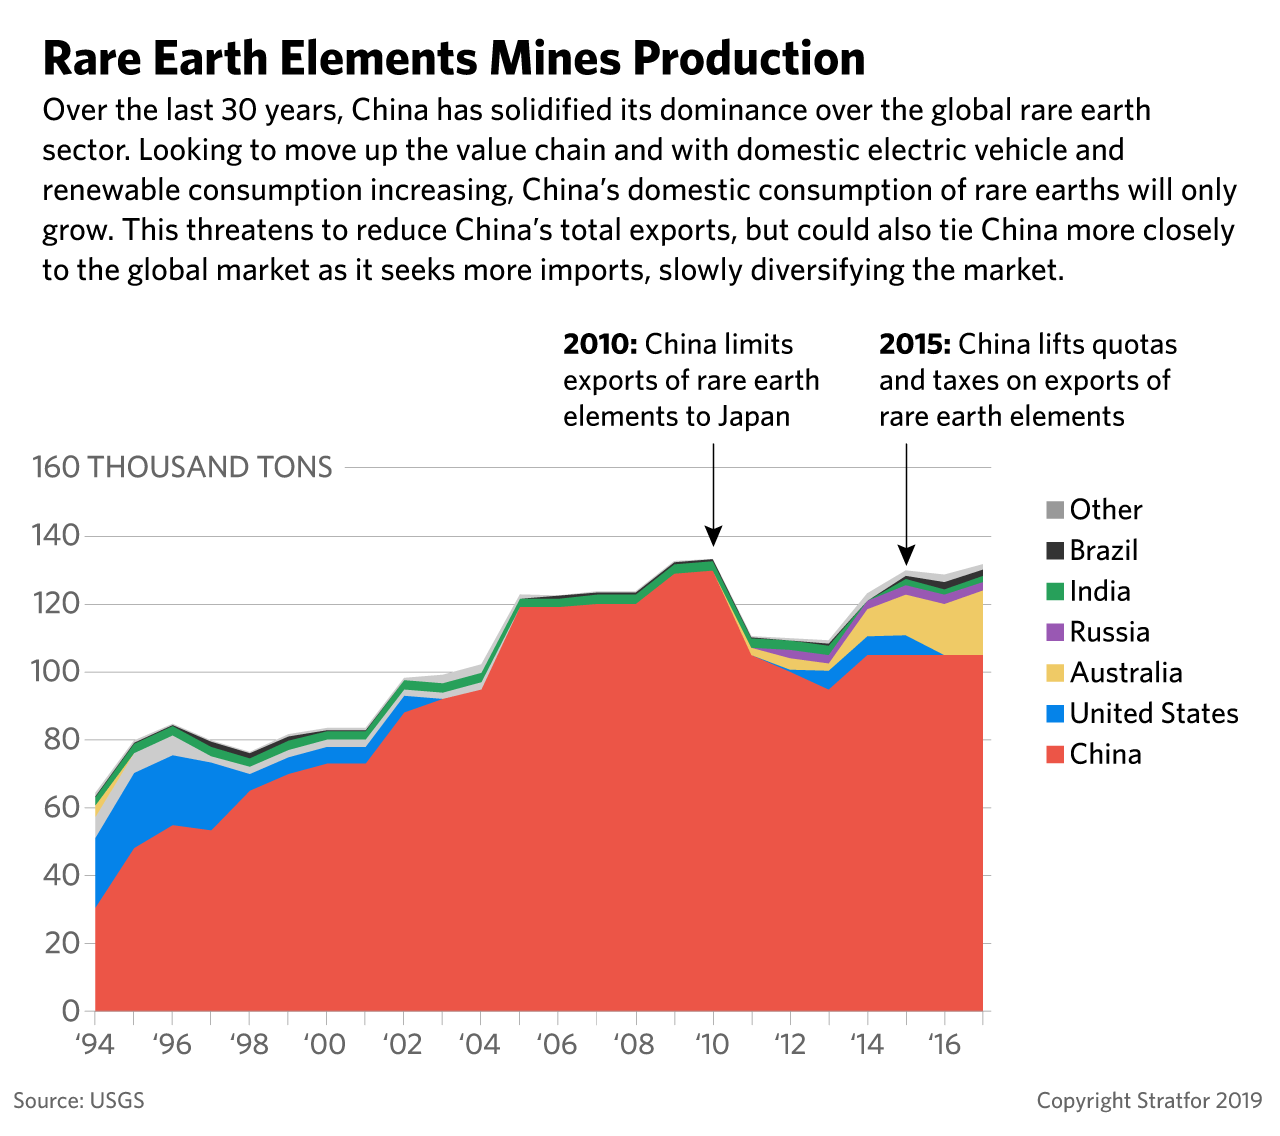 A graphic showing rare earth element mines production.